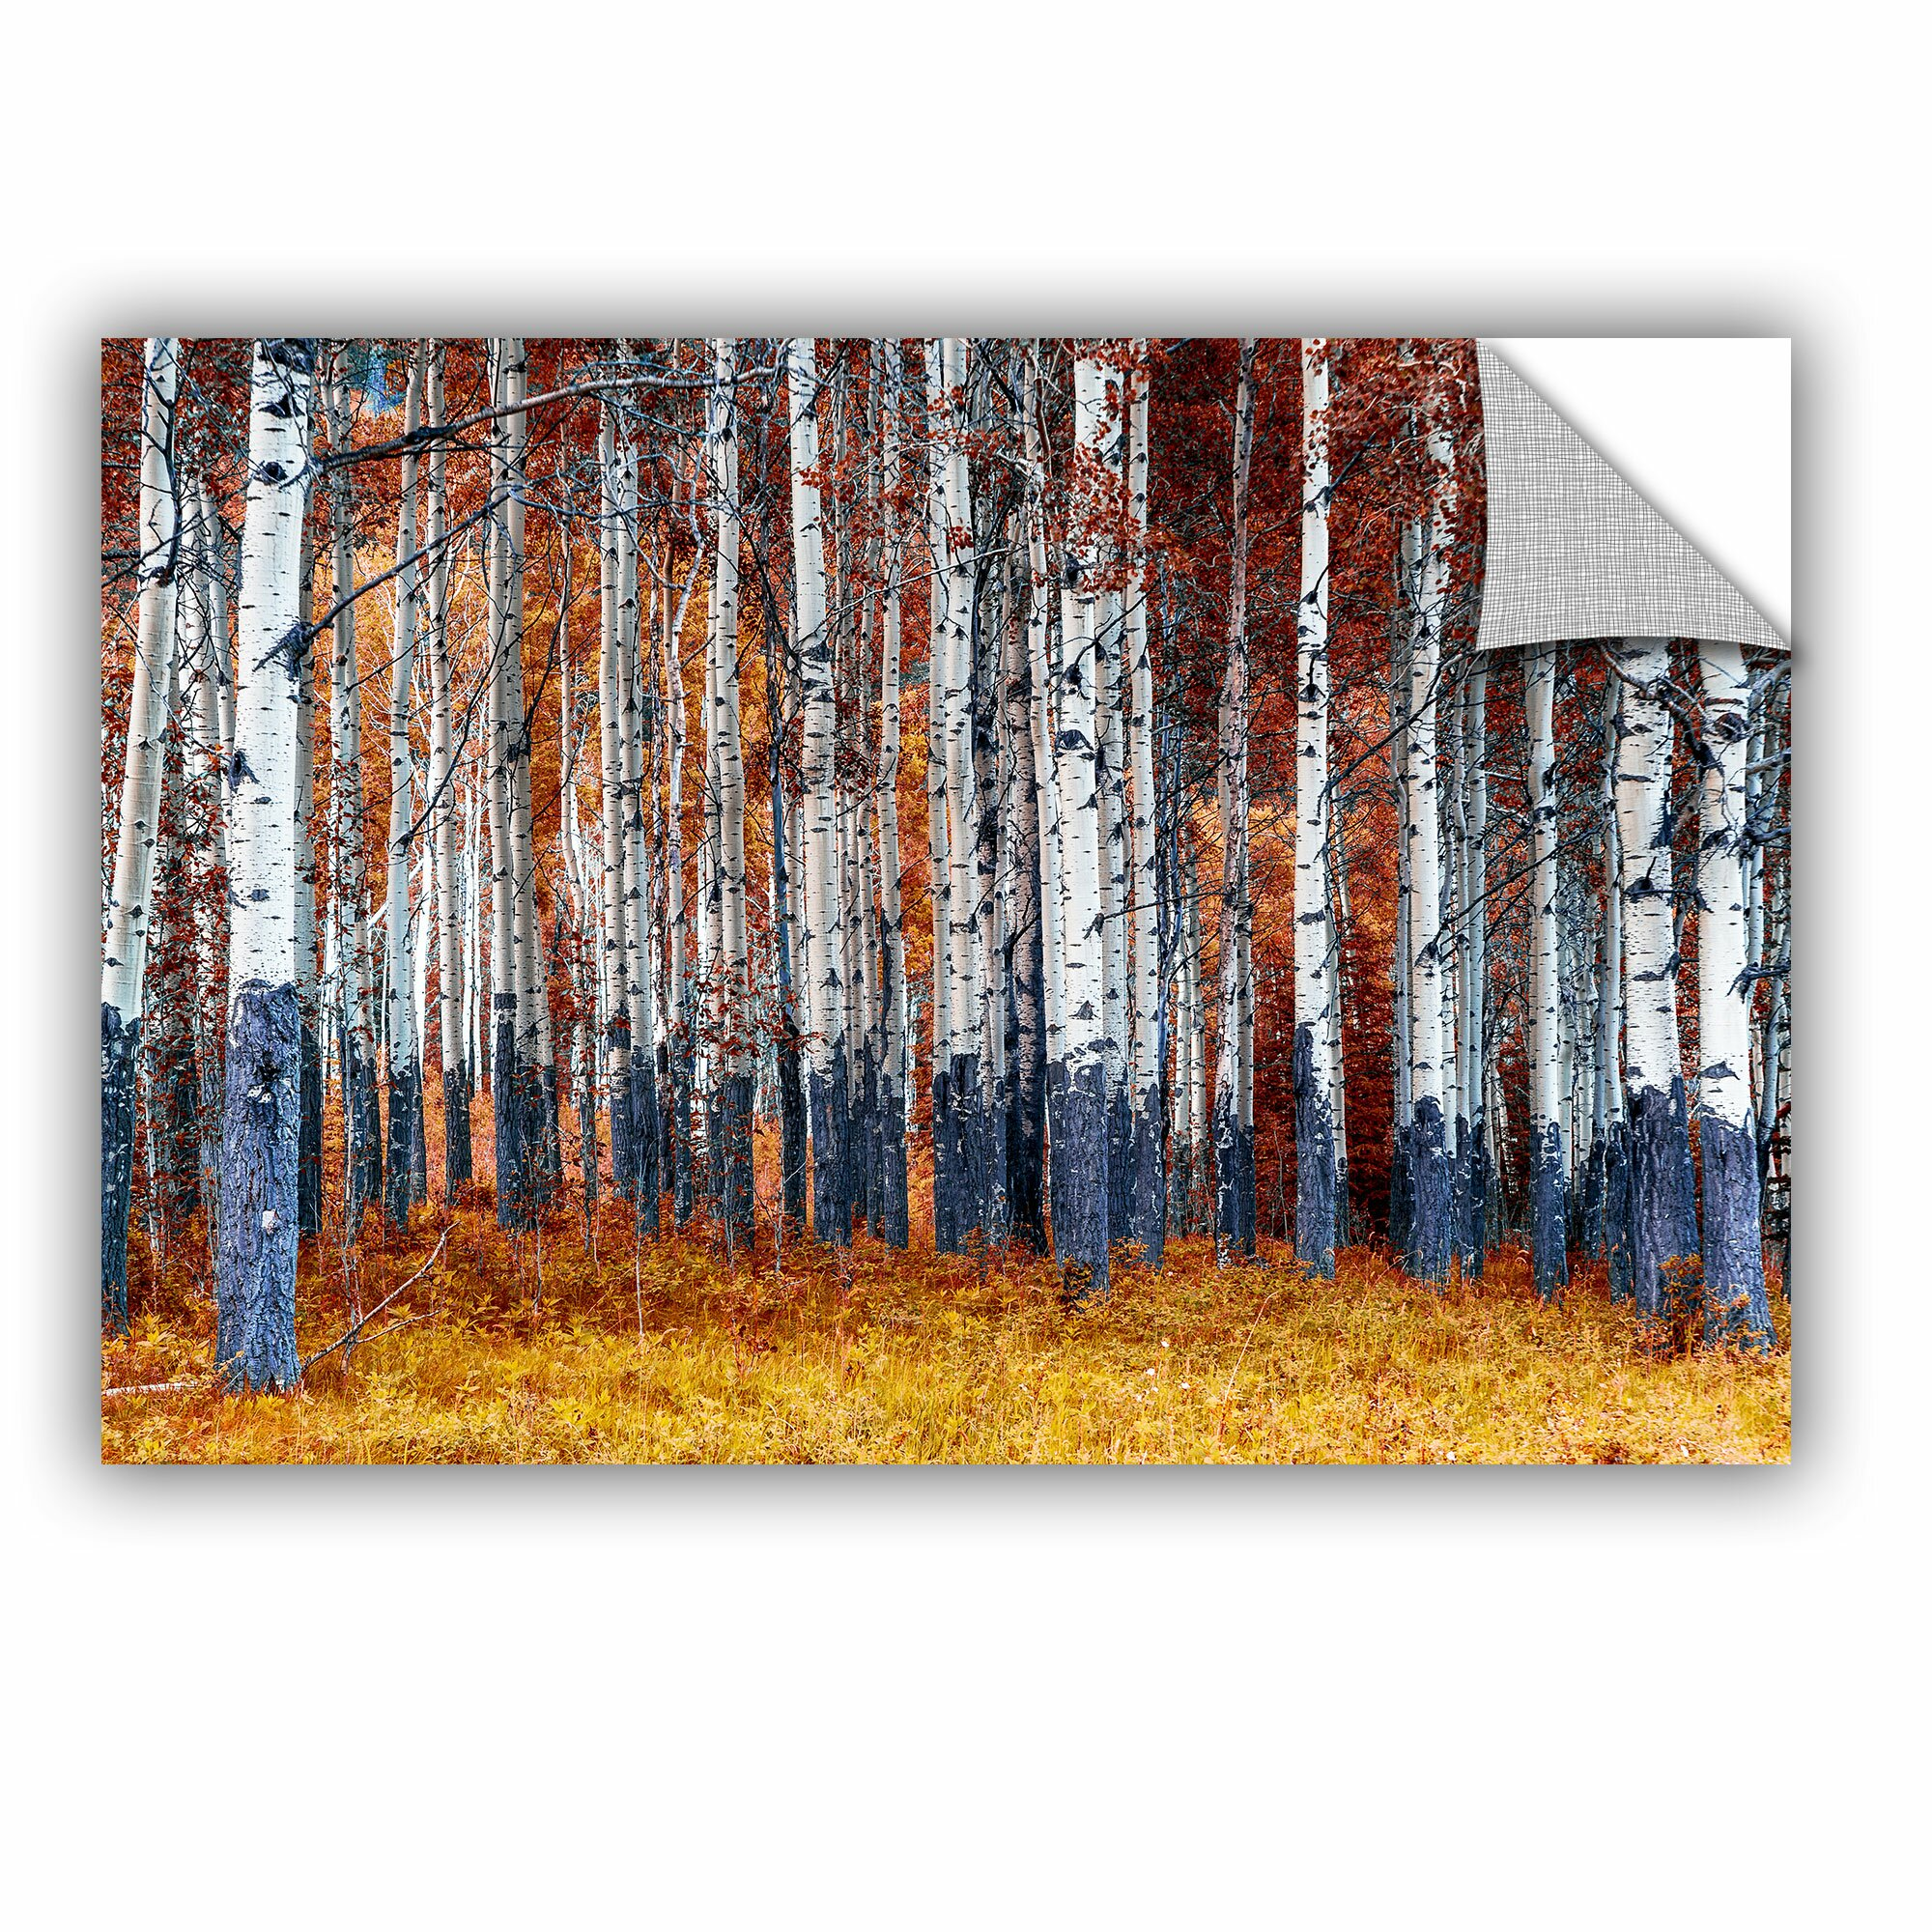 Artwall autumn forest wall mural wayfair for Autumn forest wall mural